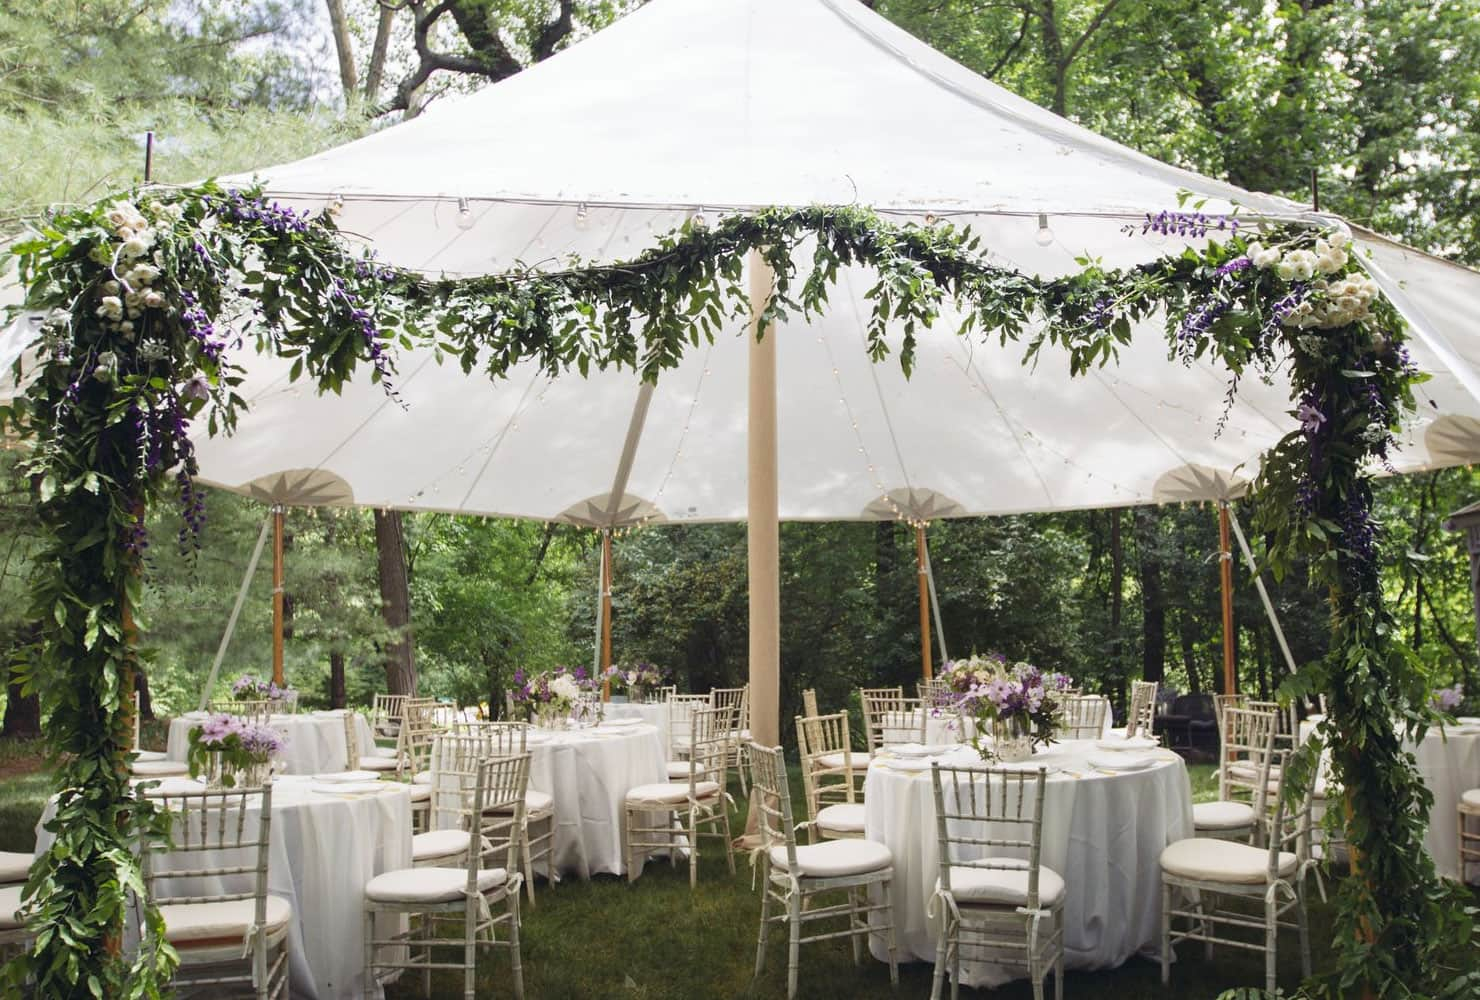 Inexpensive Recycled Wedding Decorations ideas to make 60 Bridal Shower Themes To Help You Celebrate In Style Shutterfly